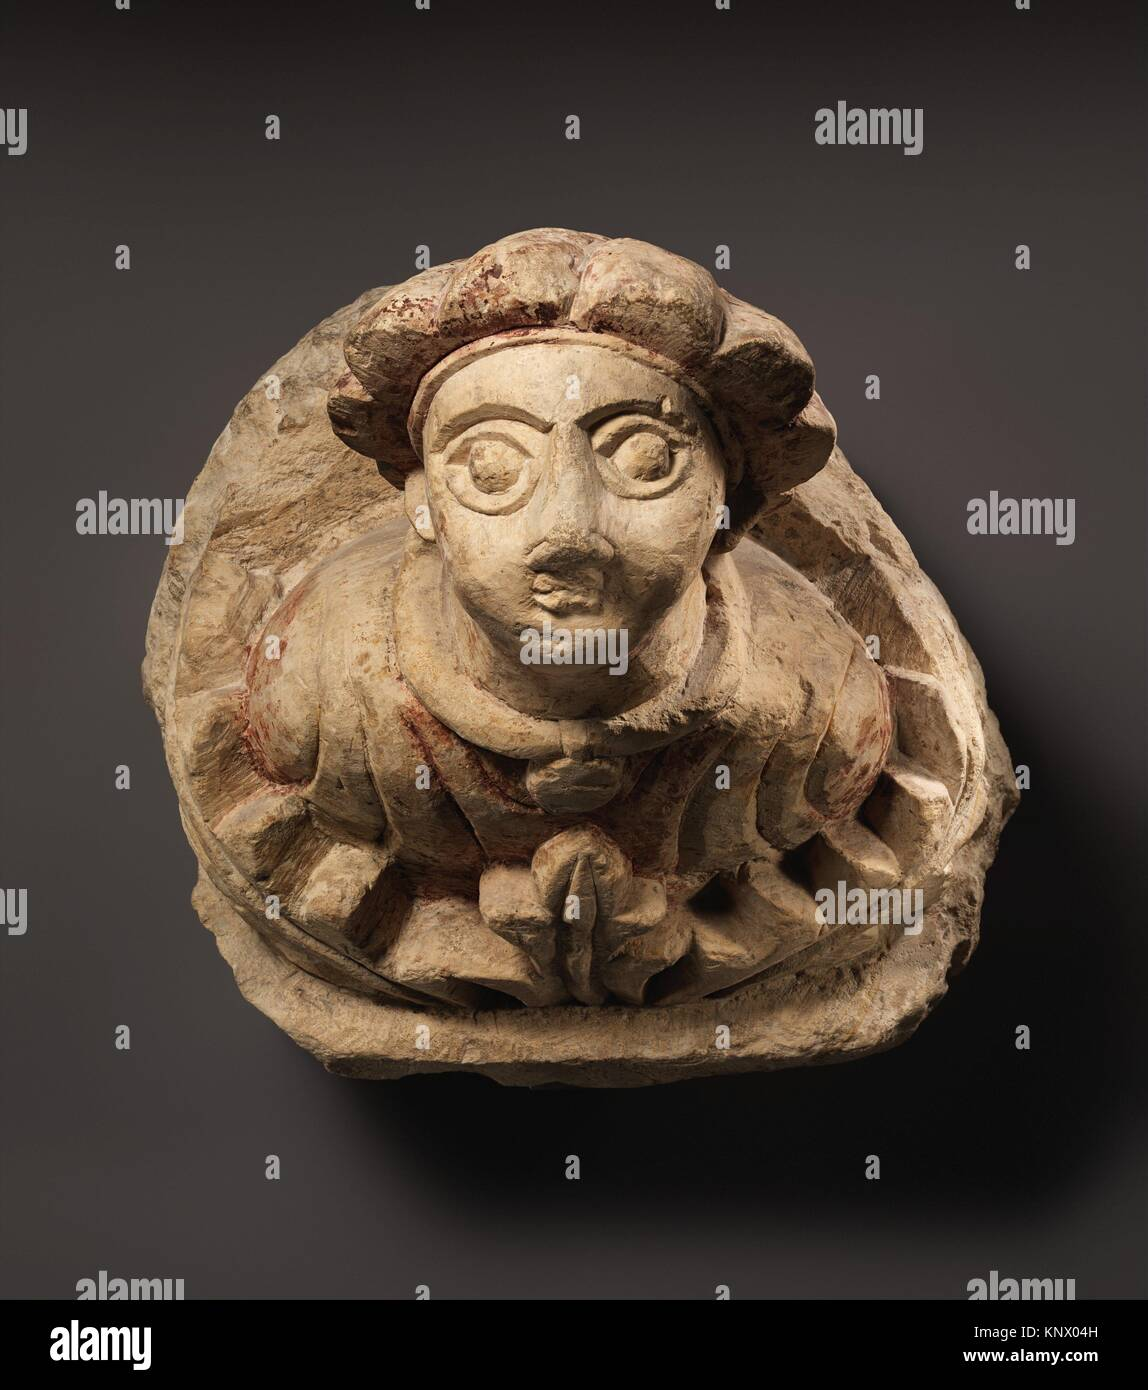 Corbel with Human Bust and Acanthus Leaves. Object Name: Corbel; Date: 5th-6th century; Geography: Made in Egypt; - Stock Image